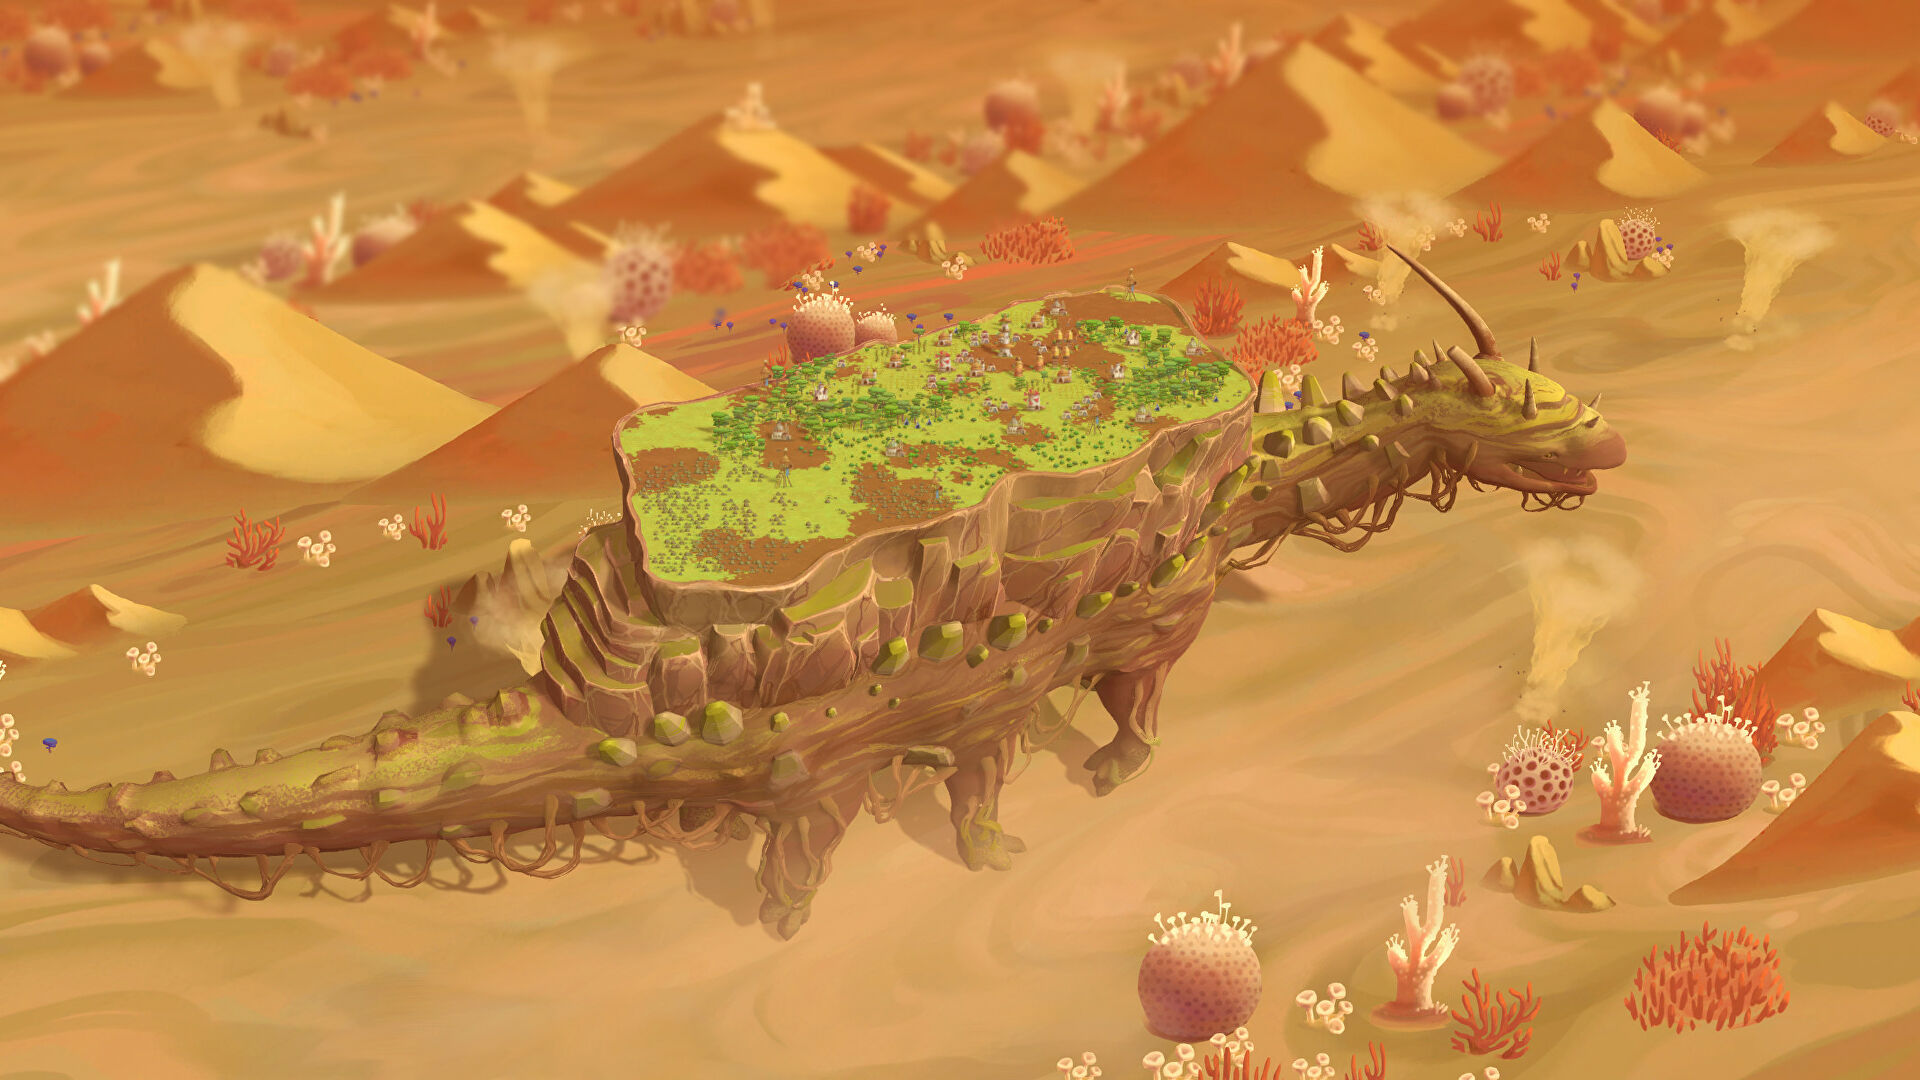 The Wandering Village will have you build a city on a giant turtle